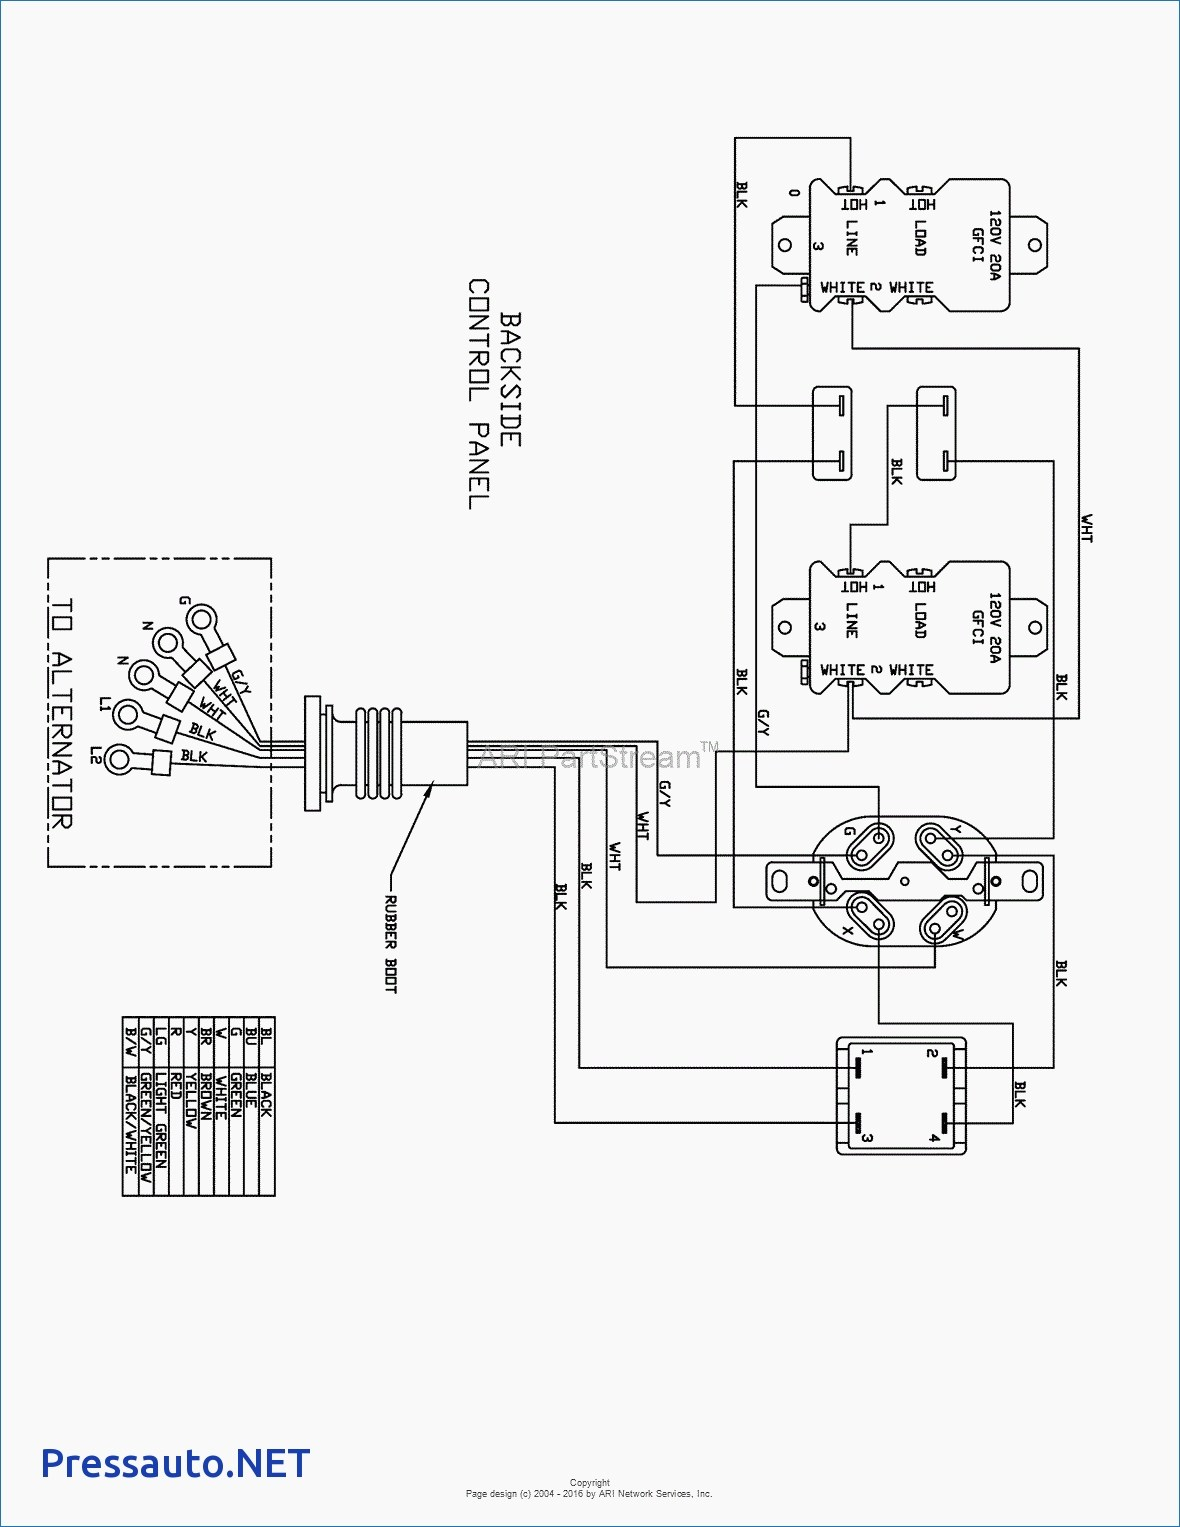 Na Home Network Wiring Diagram